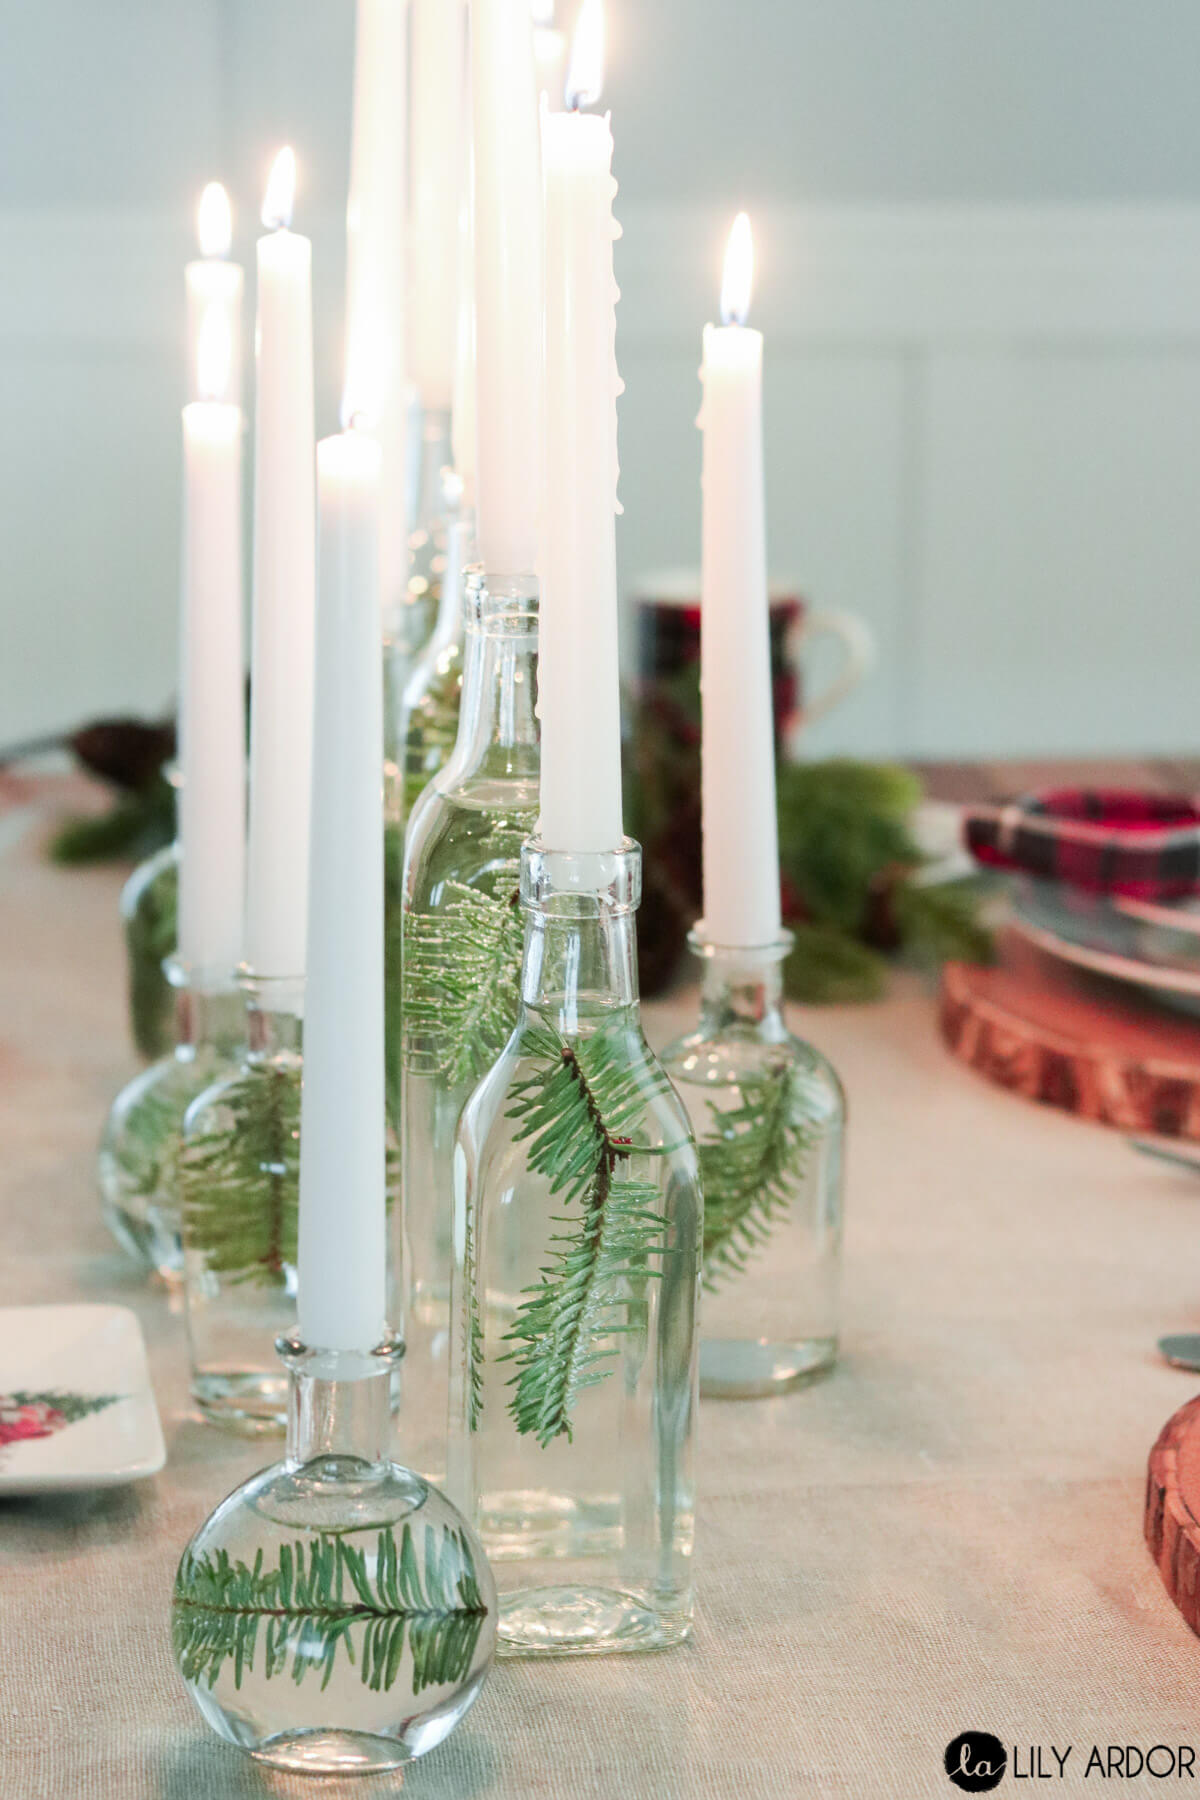 Elegant Clean and Simple Winter White Candles